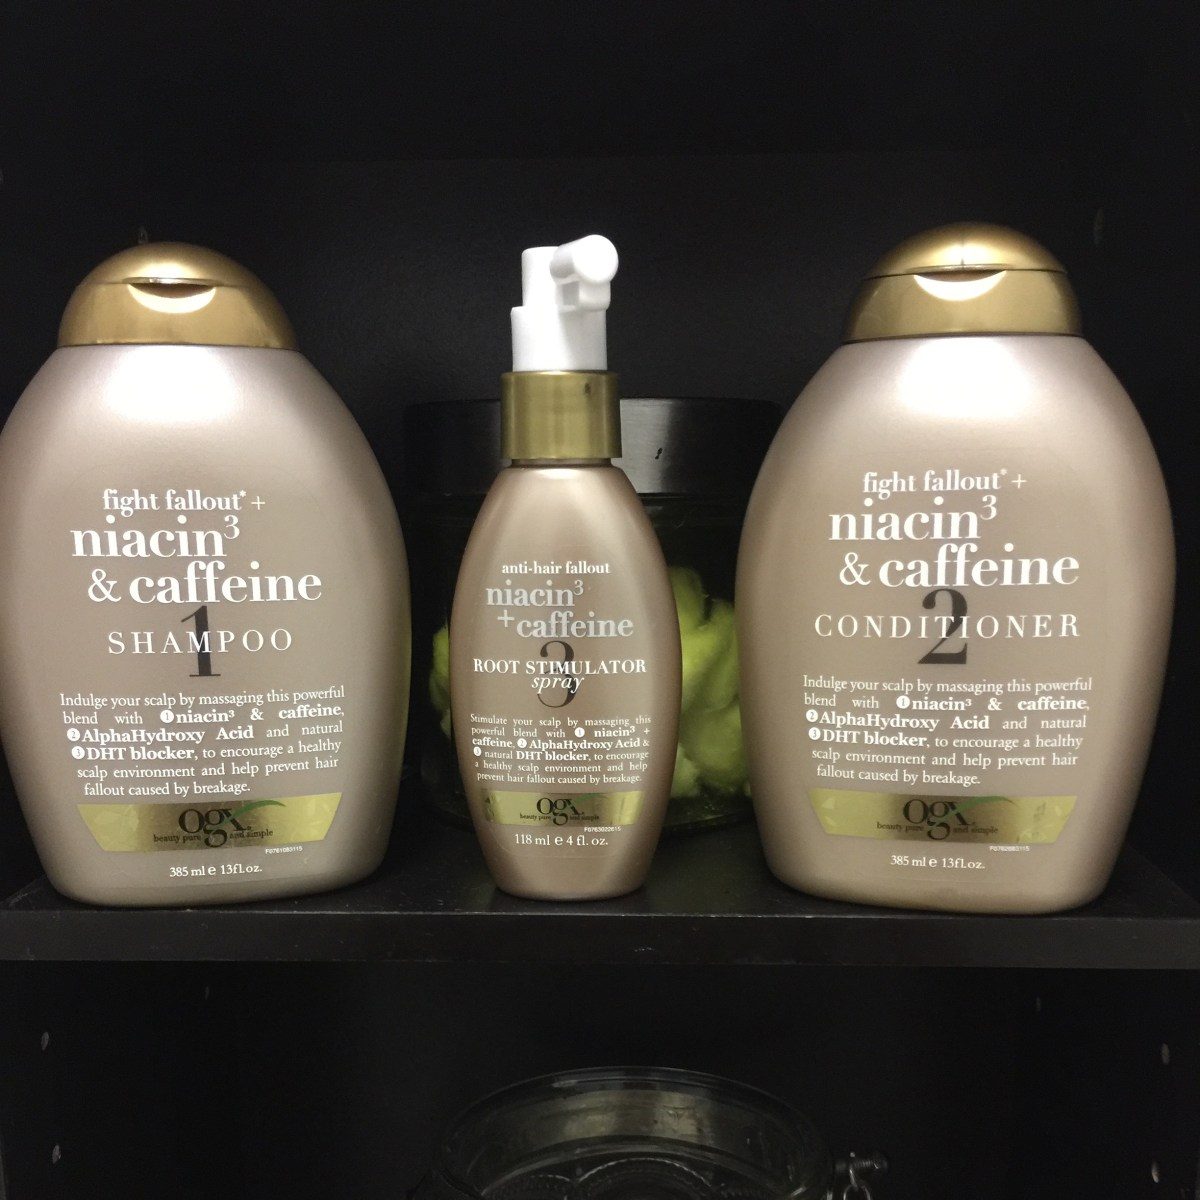 In Review: OGX Anti-Hair Fallout Niacin3 & Caffeine Hair Products